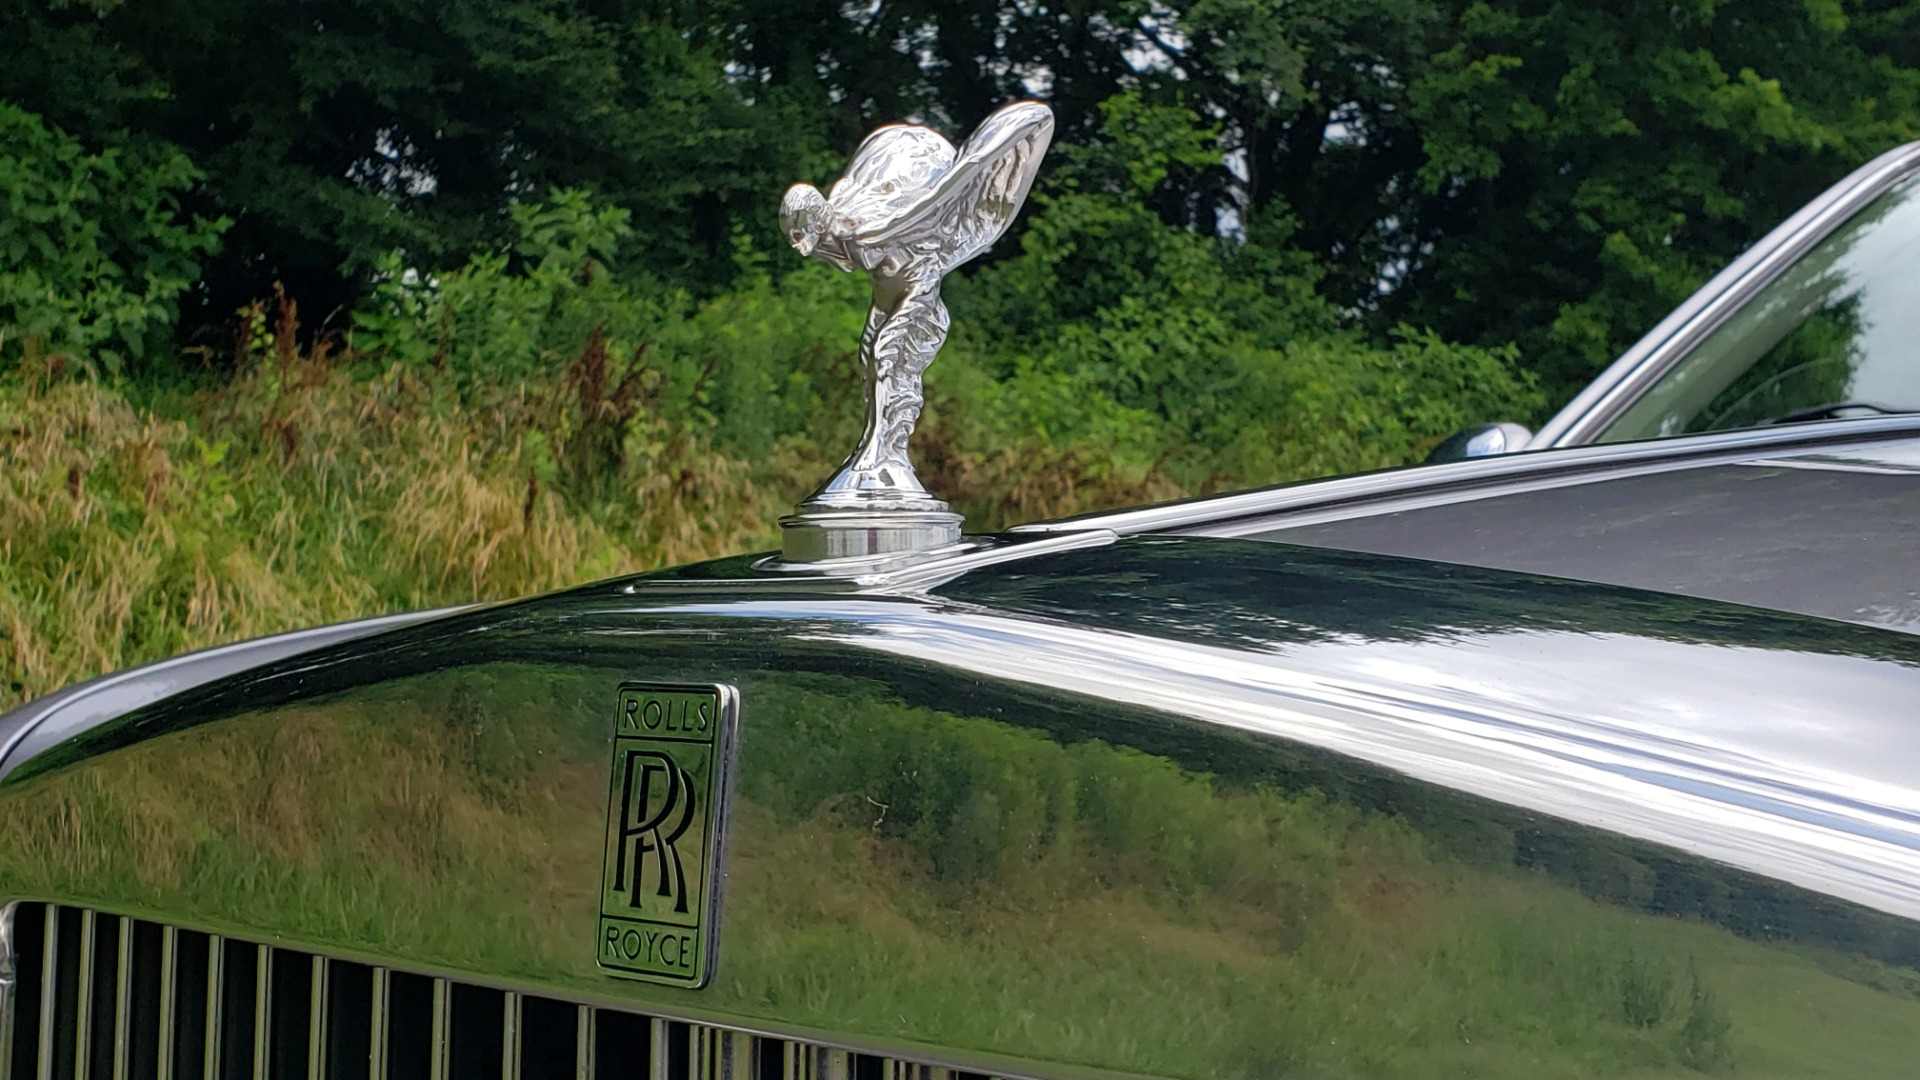 Used 1999 Rolls-Royce SILVER SERAPH 5.4L V12 / AUTO TRANS / LOW MILES / VERY CLEAN! for sale $34,999 at Formula Imports in Charlotte NC 28227 13